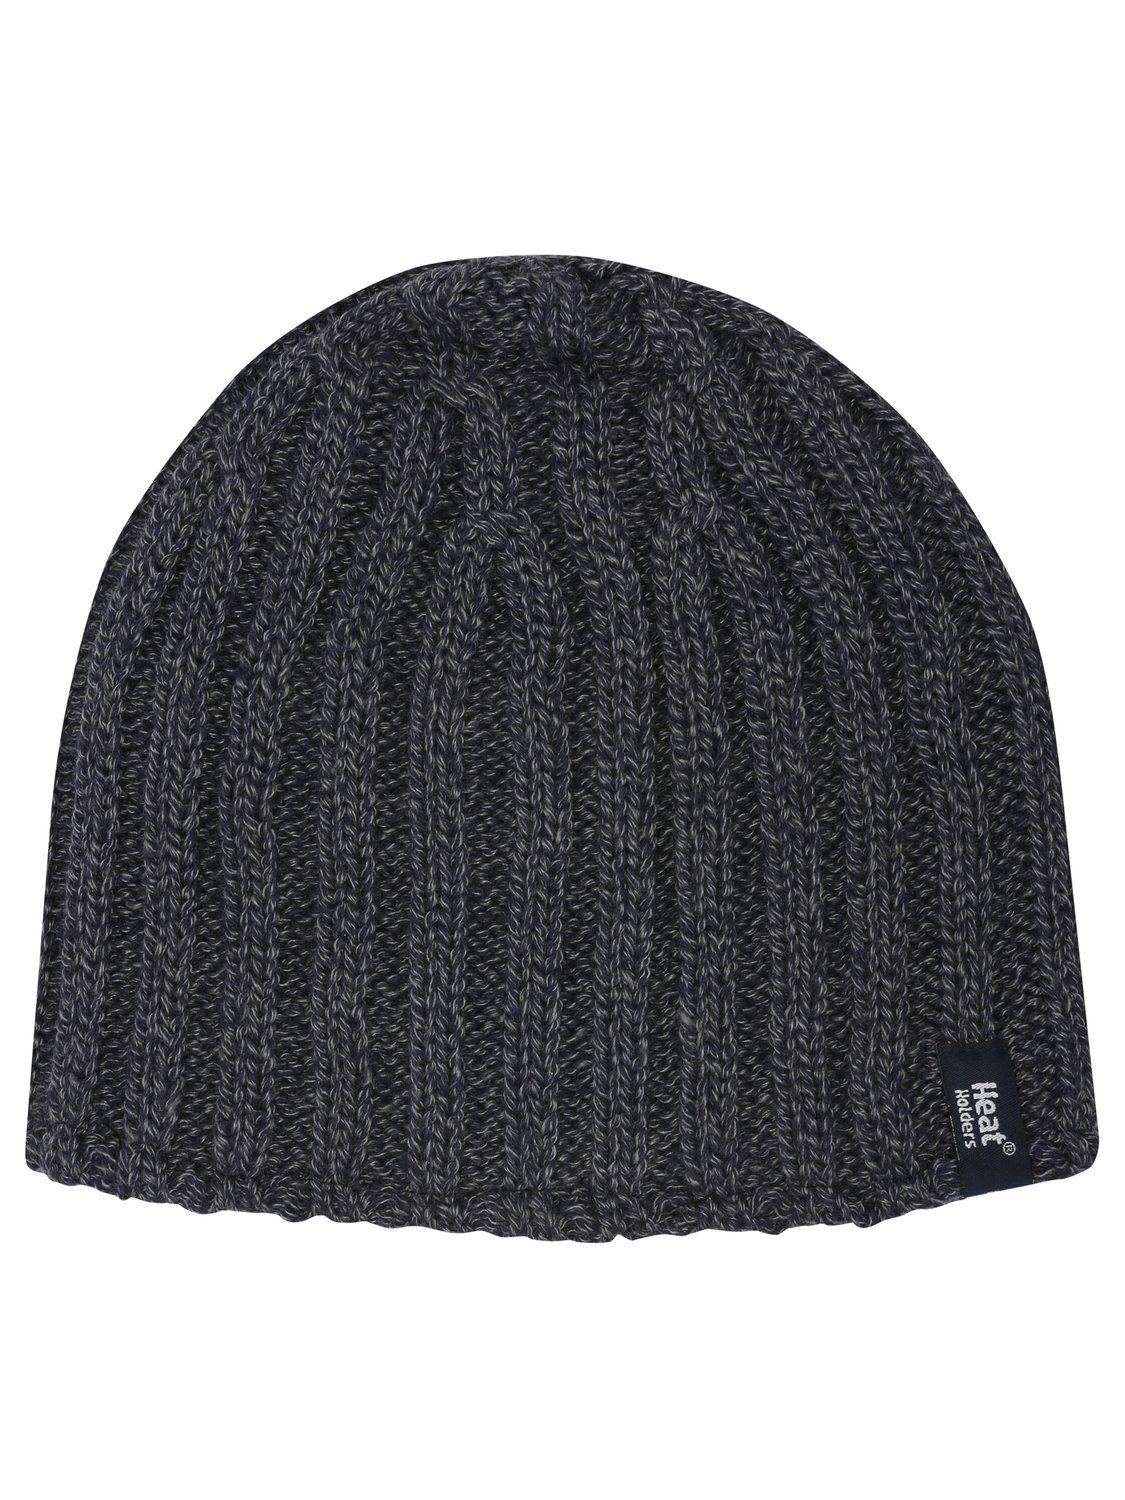 Mens Plain Navy Soft And Cosy Twist Knit Thermal Winter Beanie Hat   Navy